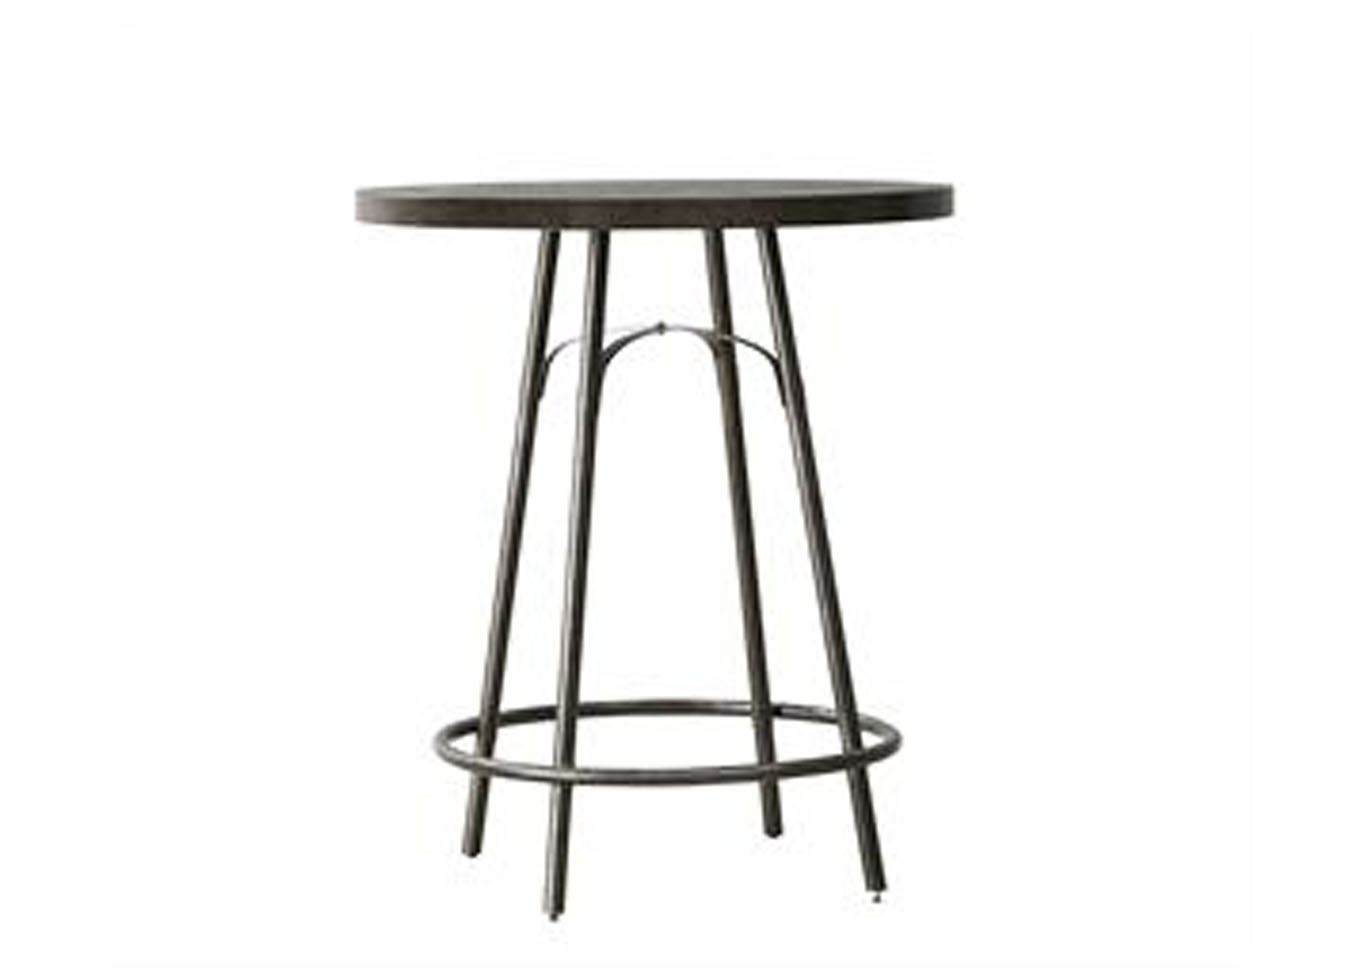 Vintage Tempo Metal Pub Table,Pulaski Furniture